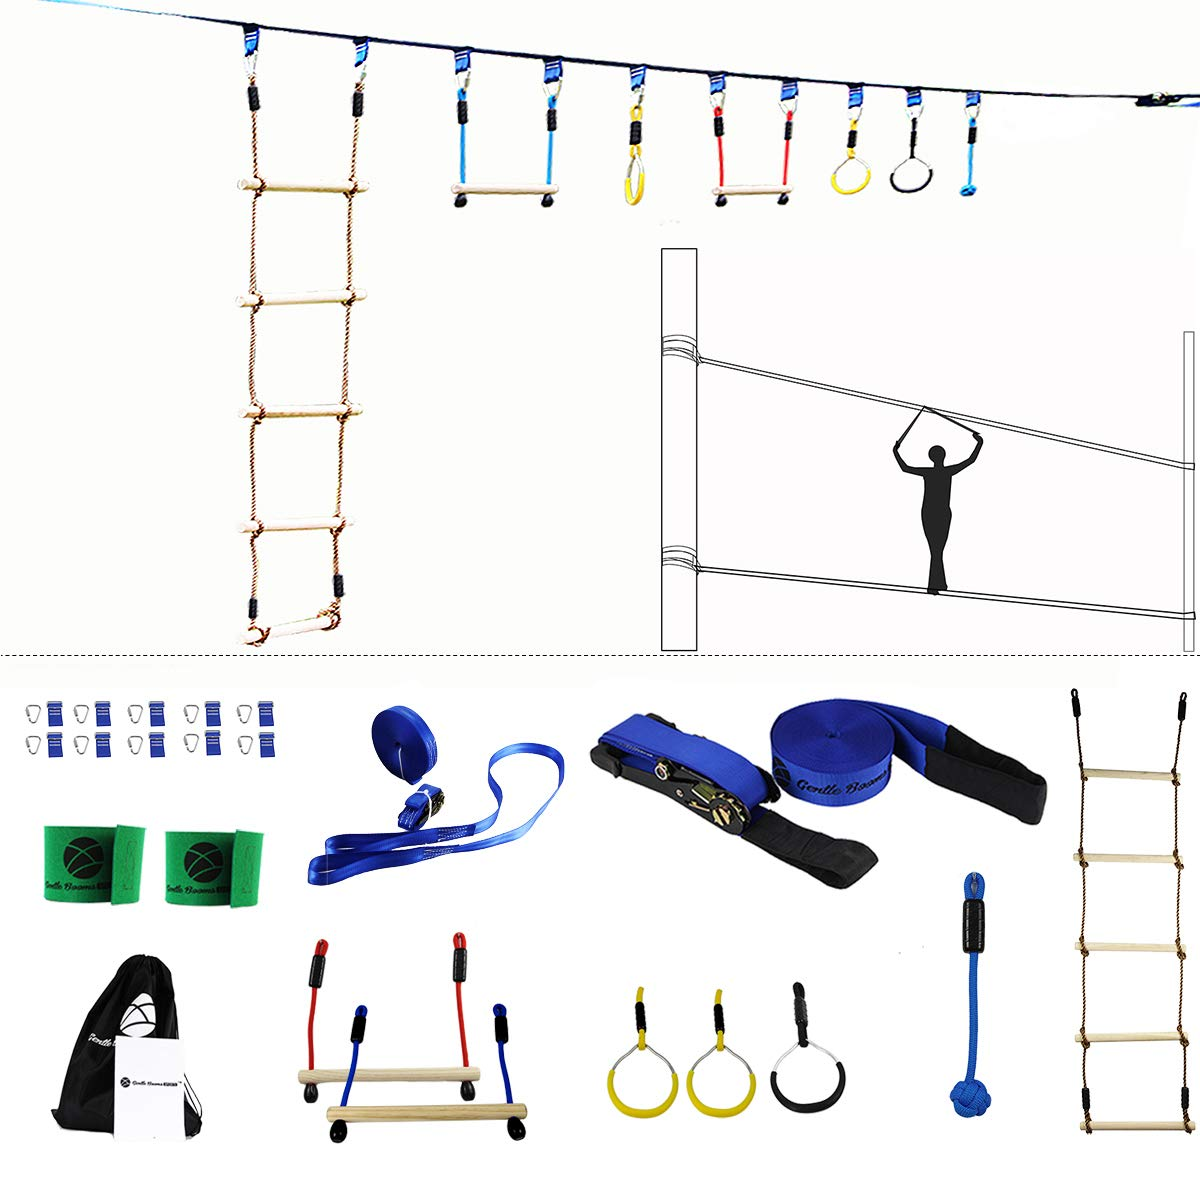 Gentle Booms Sports Ninja Line Obstacle Course Kit Monkey Bar Kit 40 Foot, Kids Slackline Hanging Obstacle Course Set, Extreme Training Equipment for Outdoor Play by Gentle Booms Sports